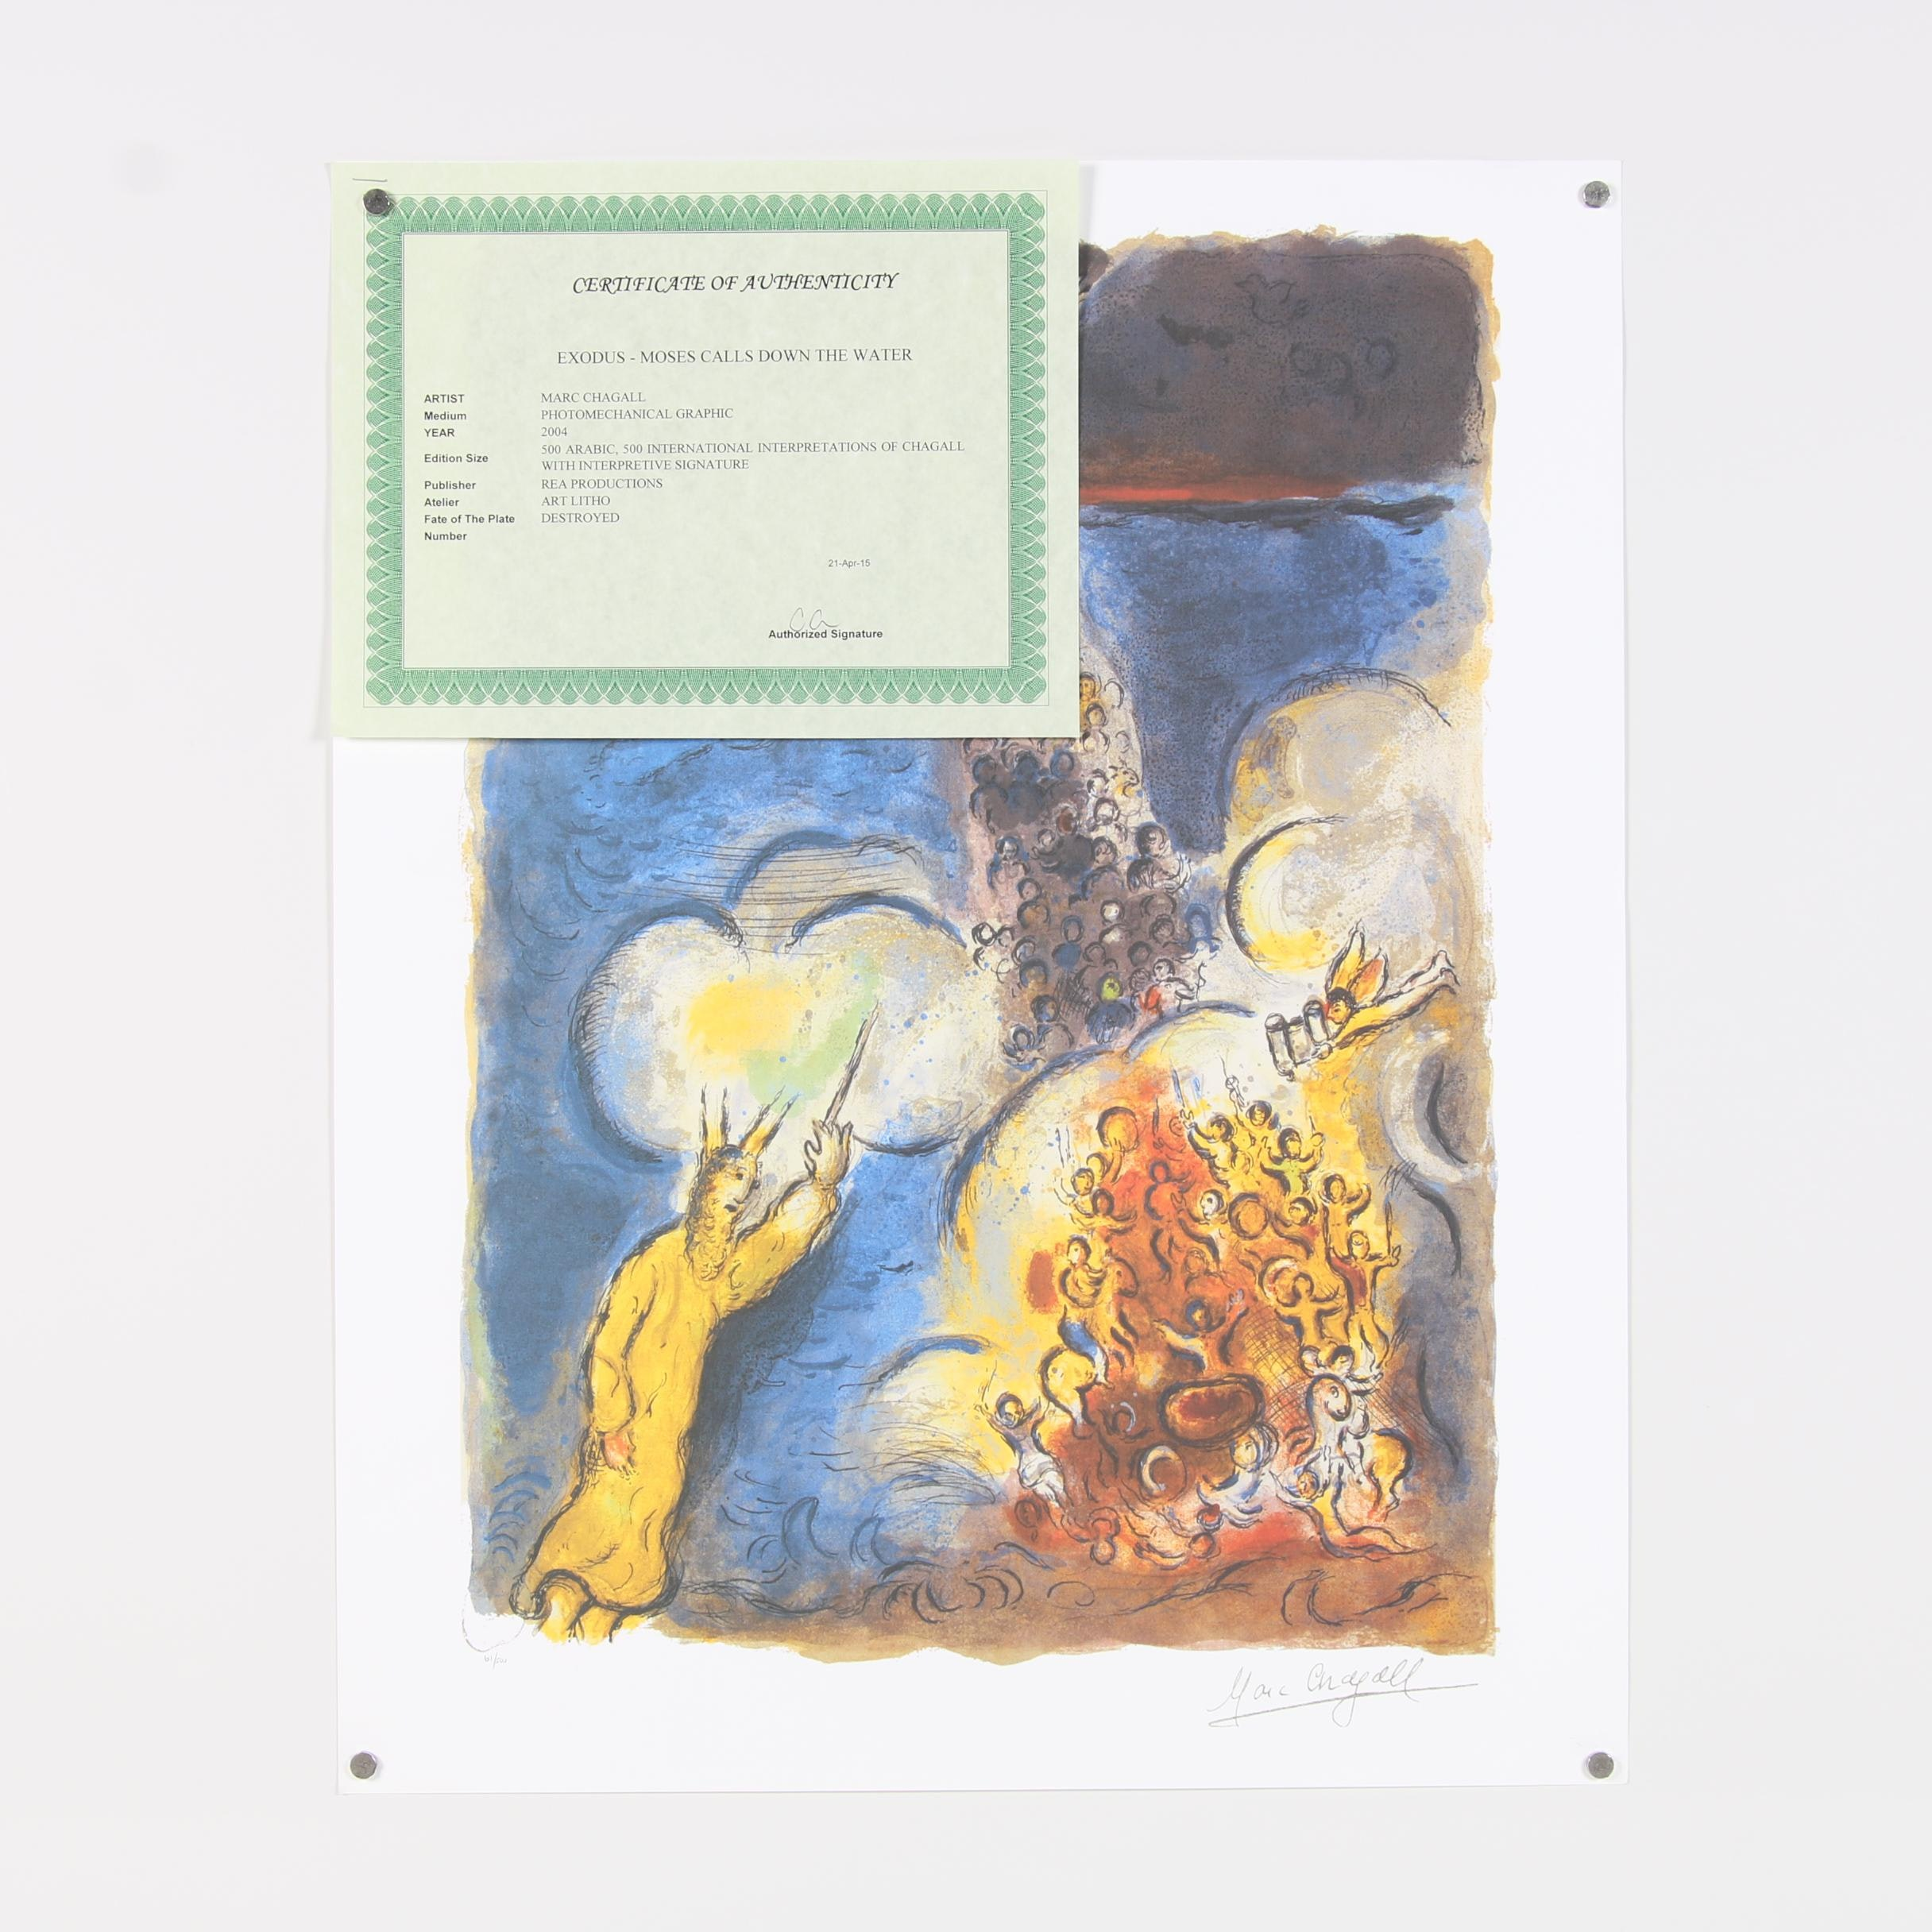 "2004 Offset Lithograph after Marc Chagall ""Exodus - Moses Calls Down the Water"""